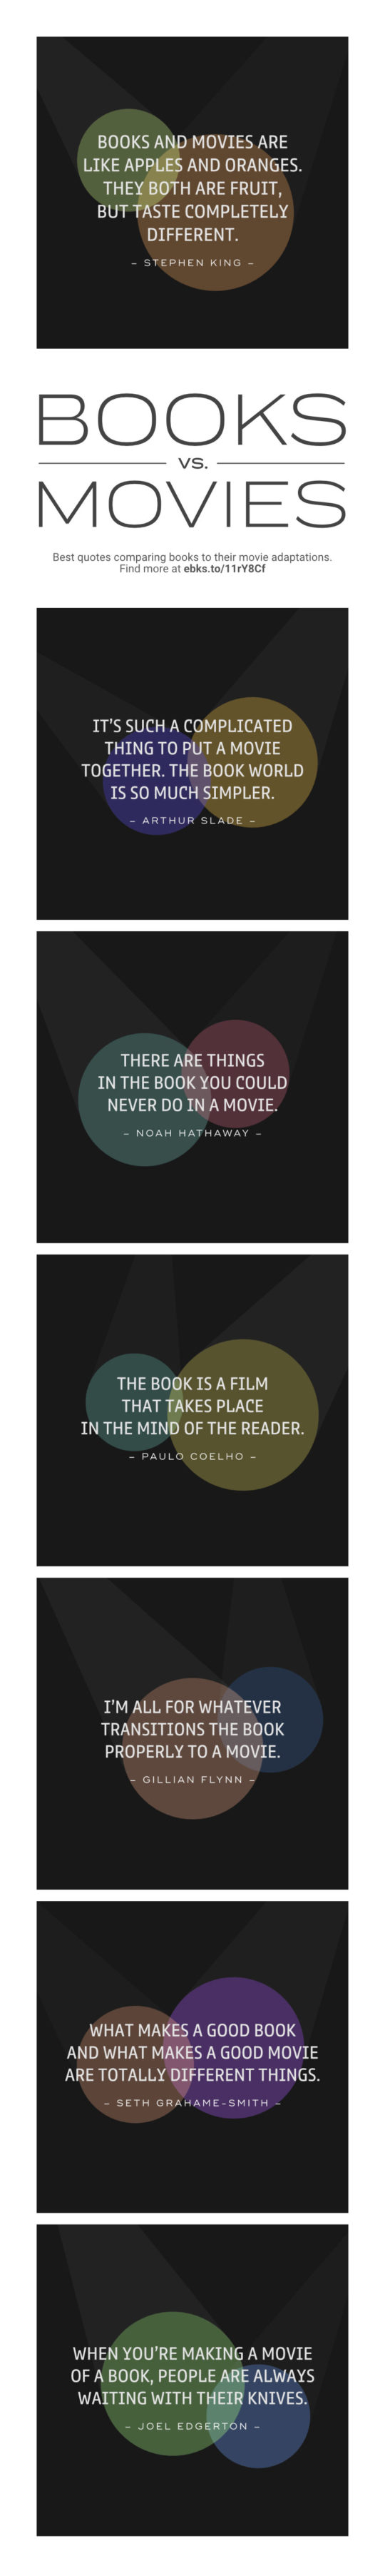 Best Quotes From Books And Movies : quotes, books, movies, Quotes, Comparing, Books, Movies